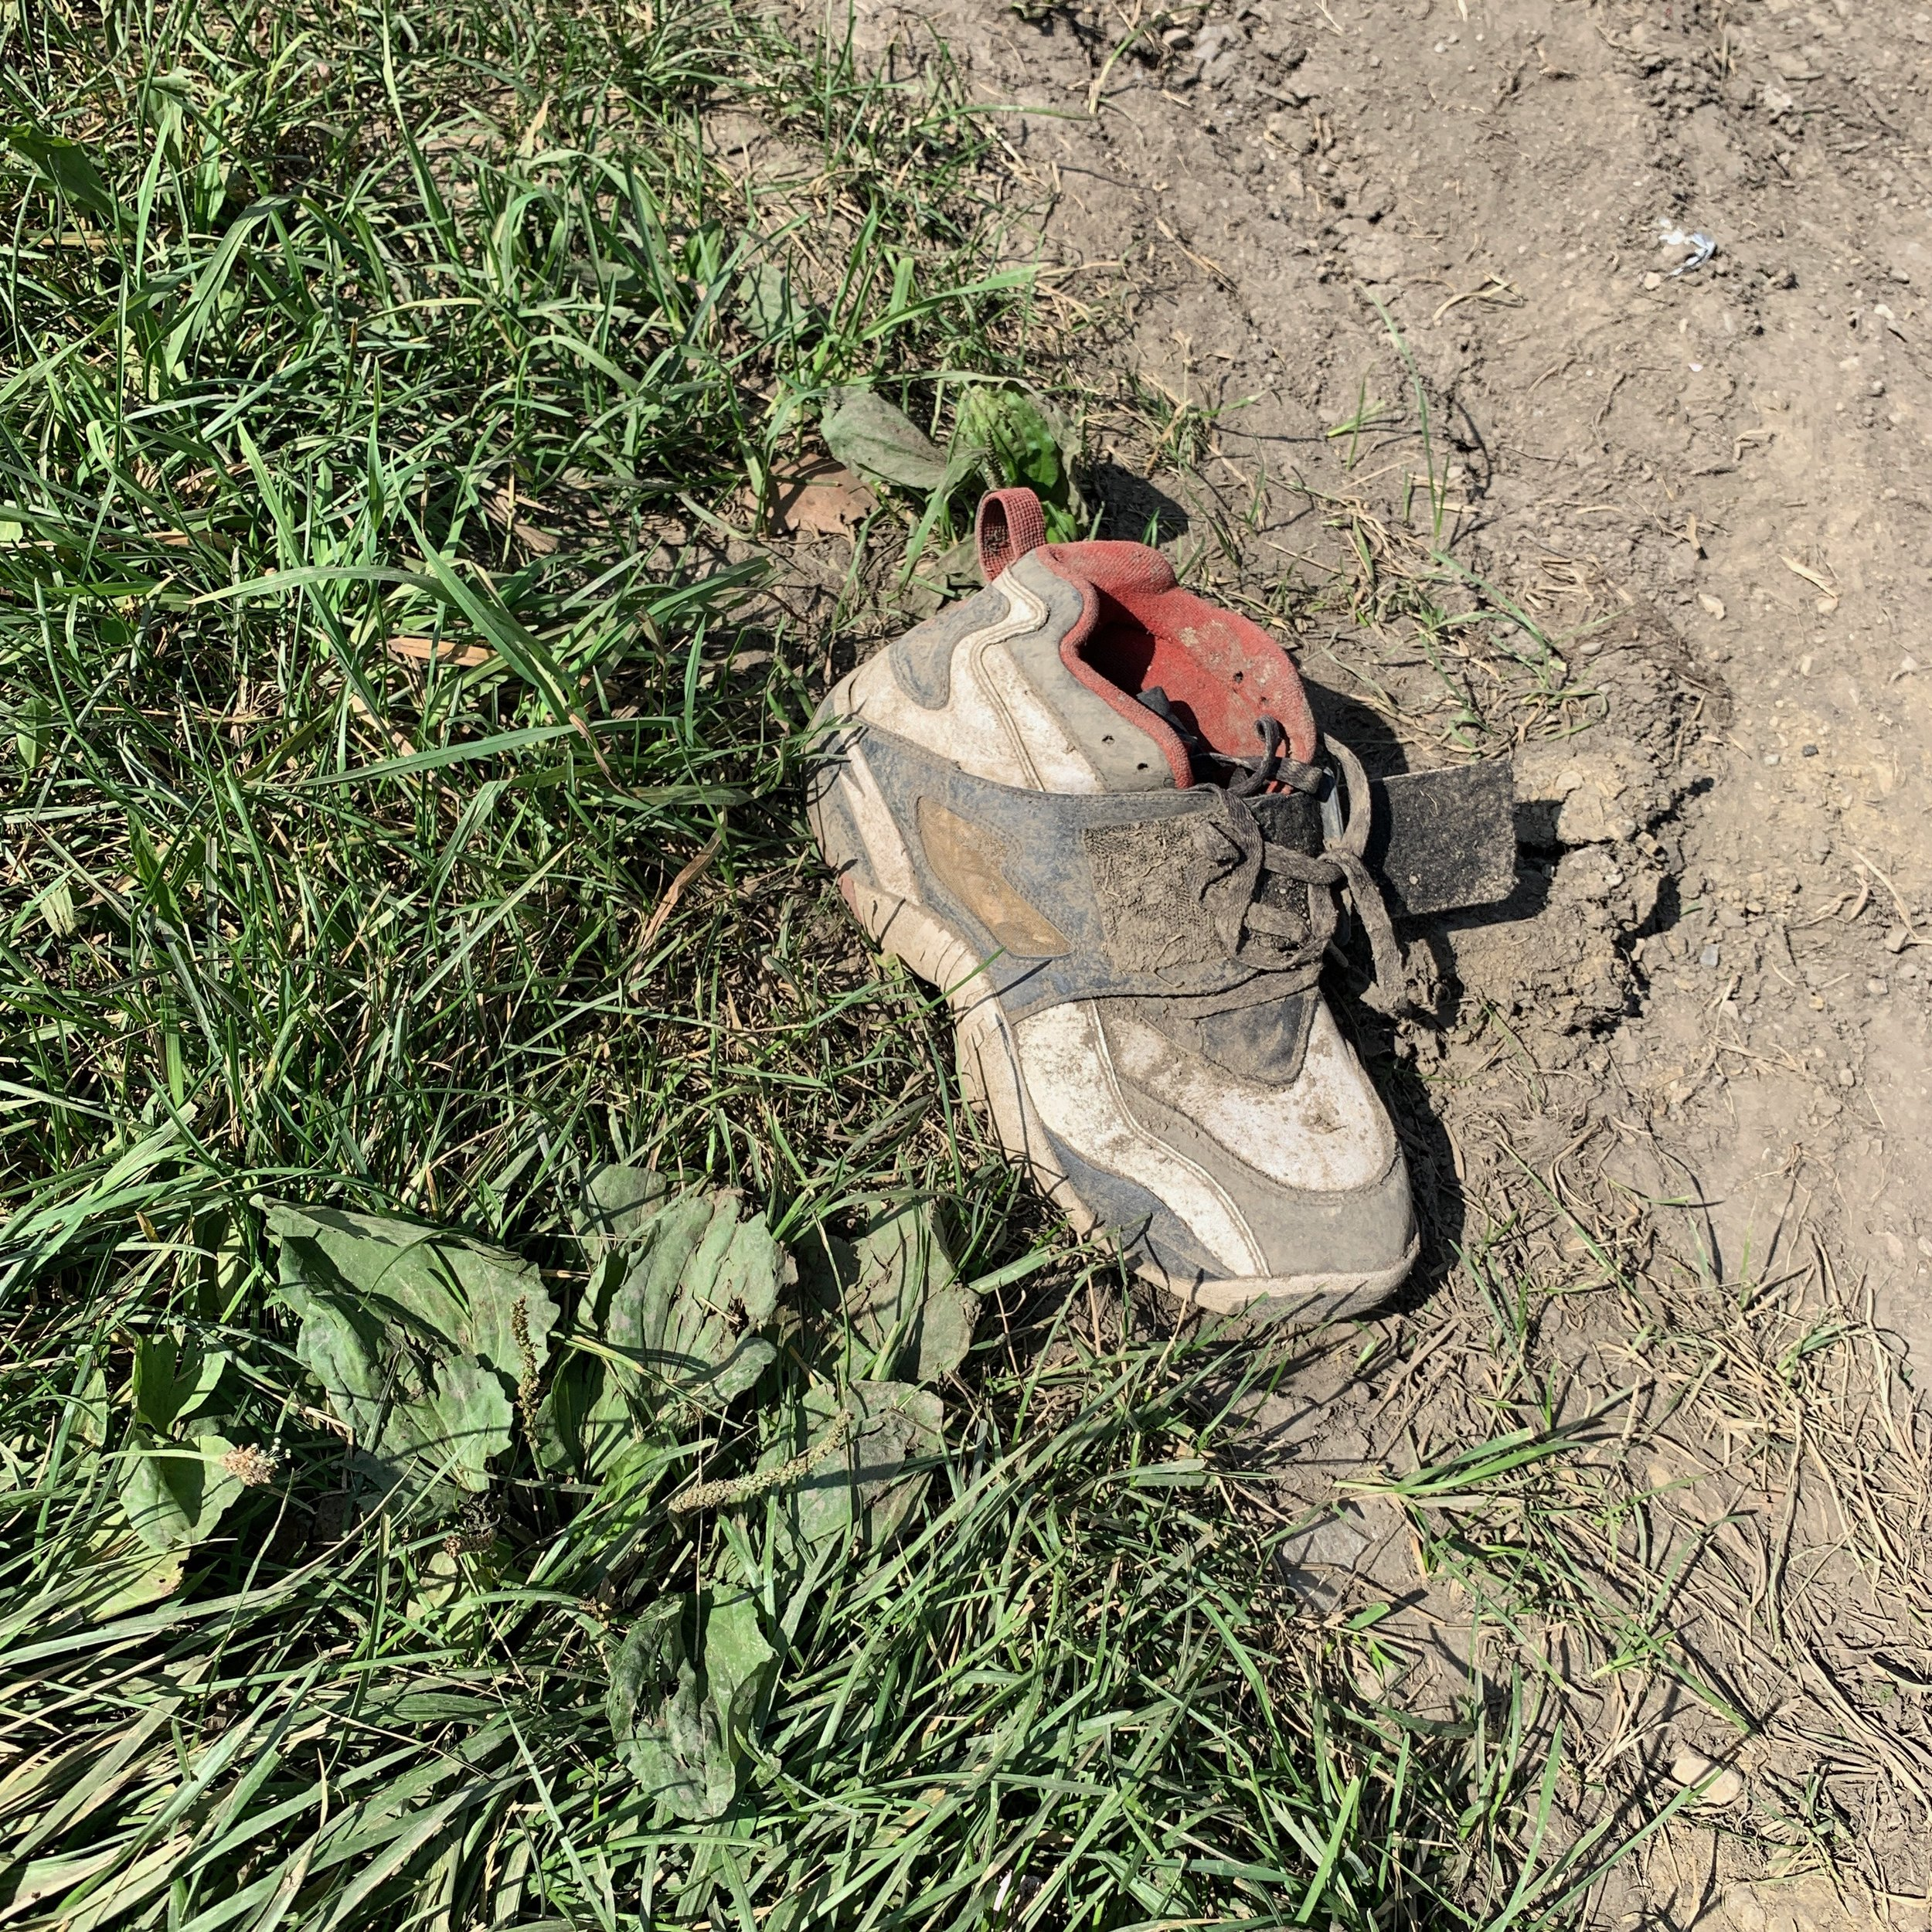 2019-07-02_Litter-CleanUp_00005.jpeg